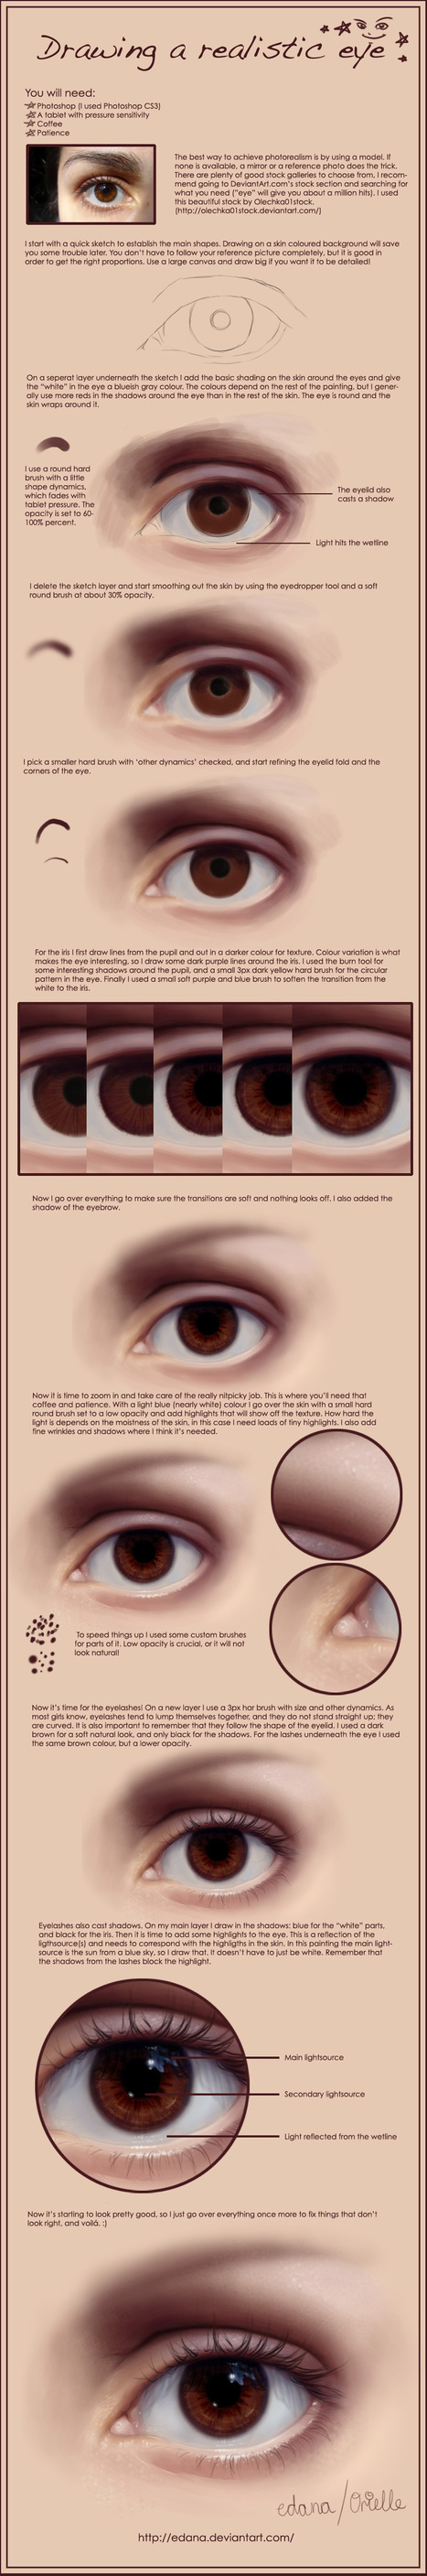 Drawing a realistic eye   art sculpture enseignement   Scoop.it